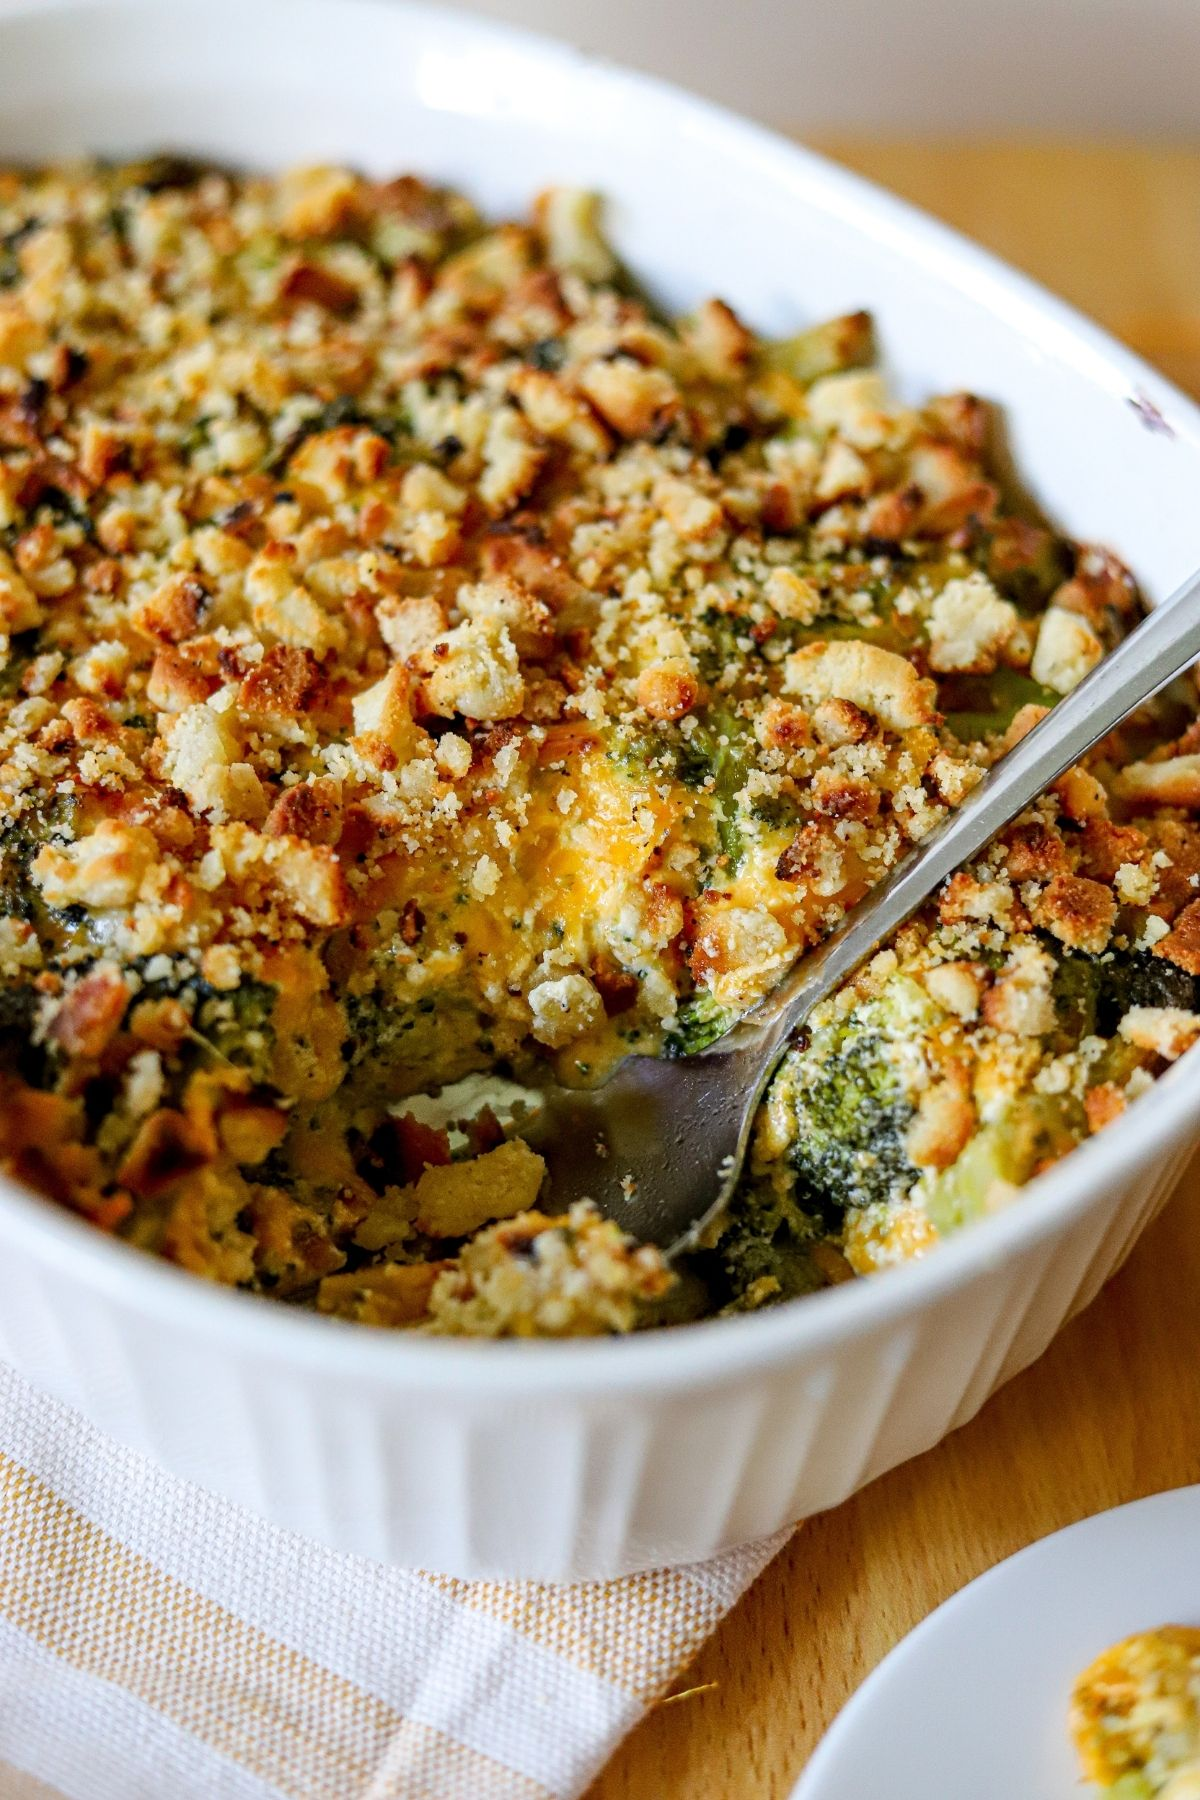 A low carb broccoli and cheese casserole baked in a white dish